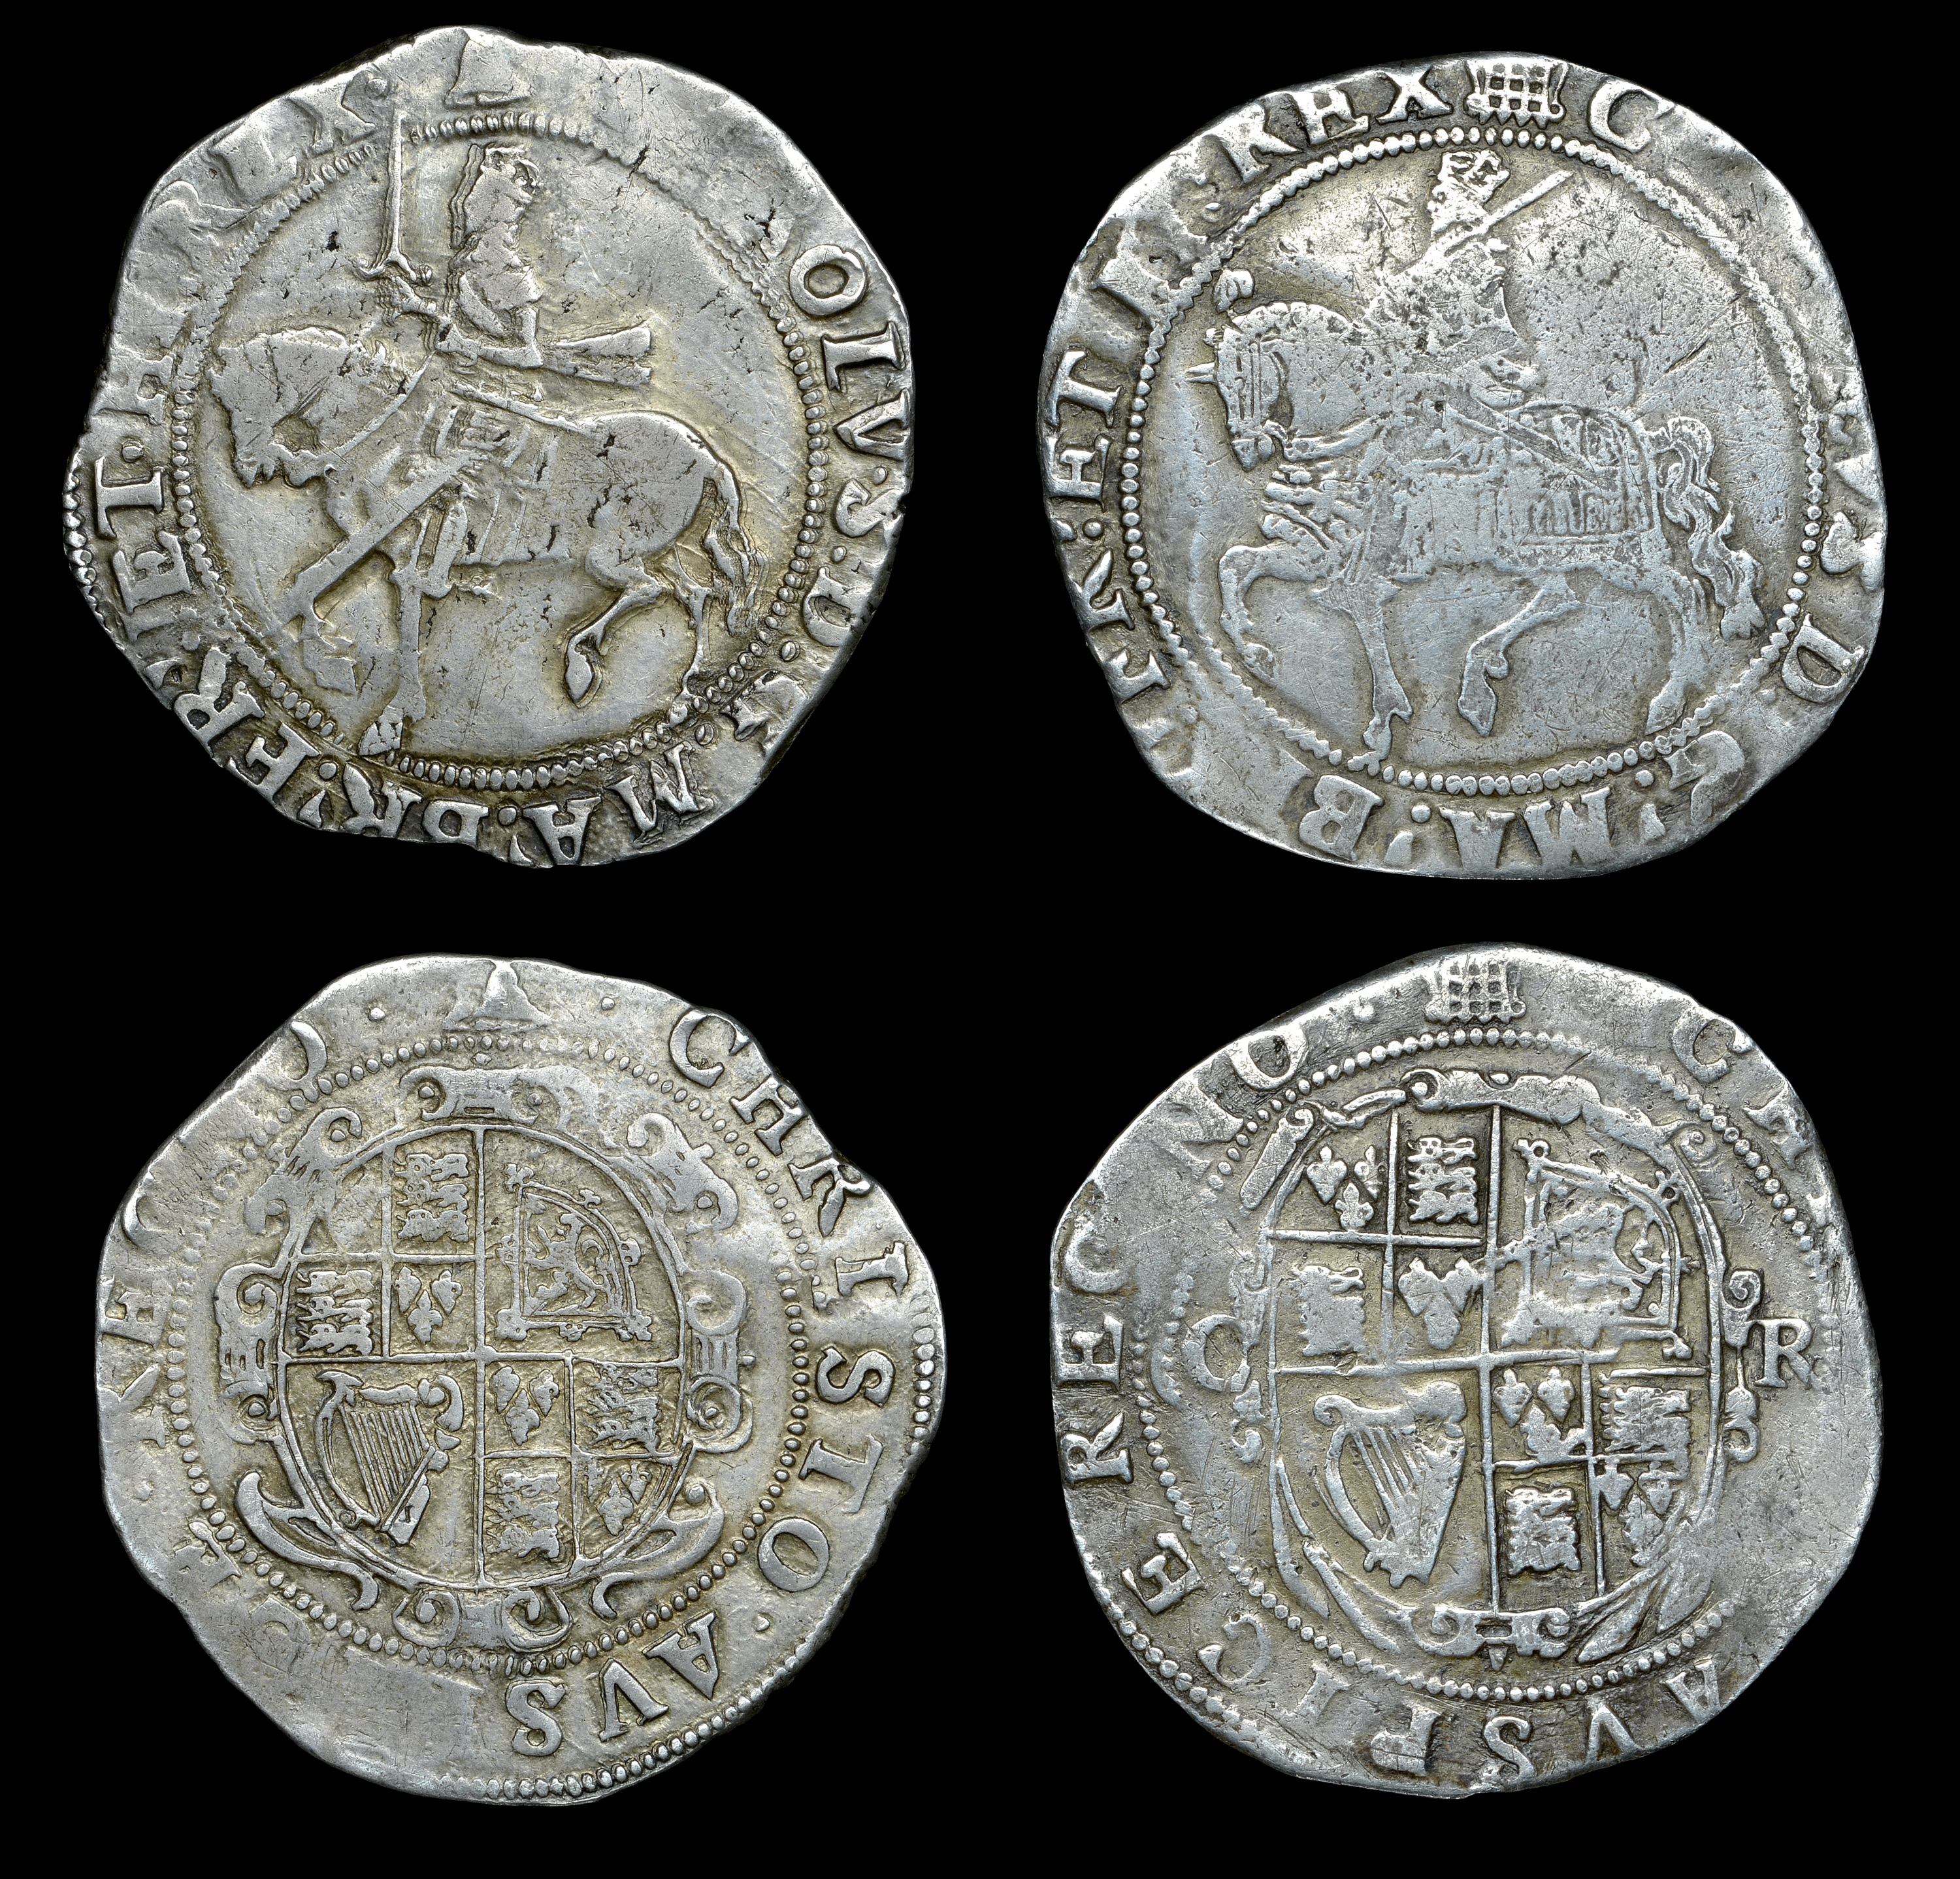 Lot 9 - The Collection of British Coins Formed by the Late Ray Inder (Part IV)